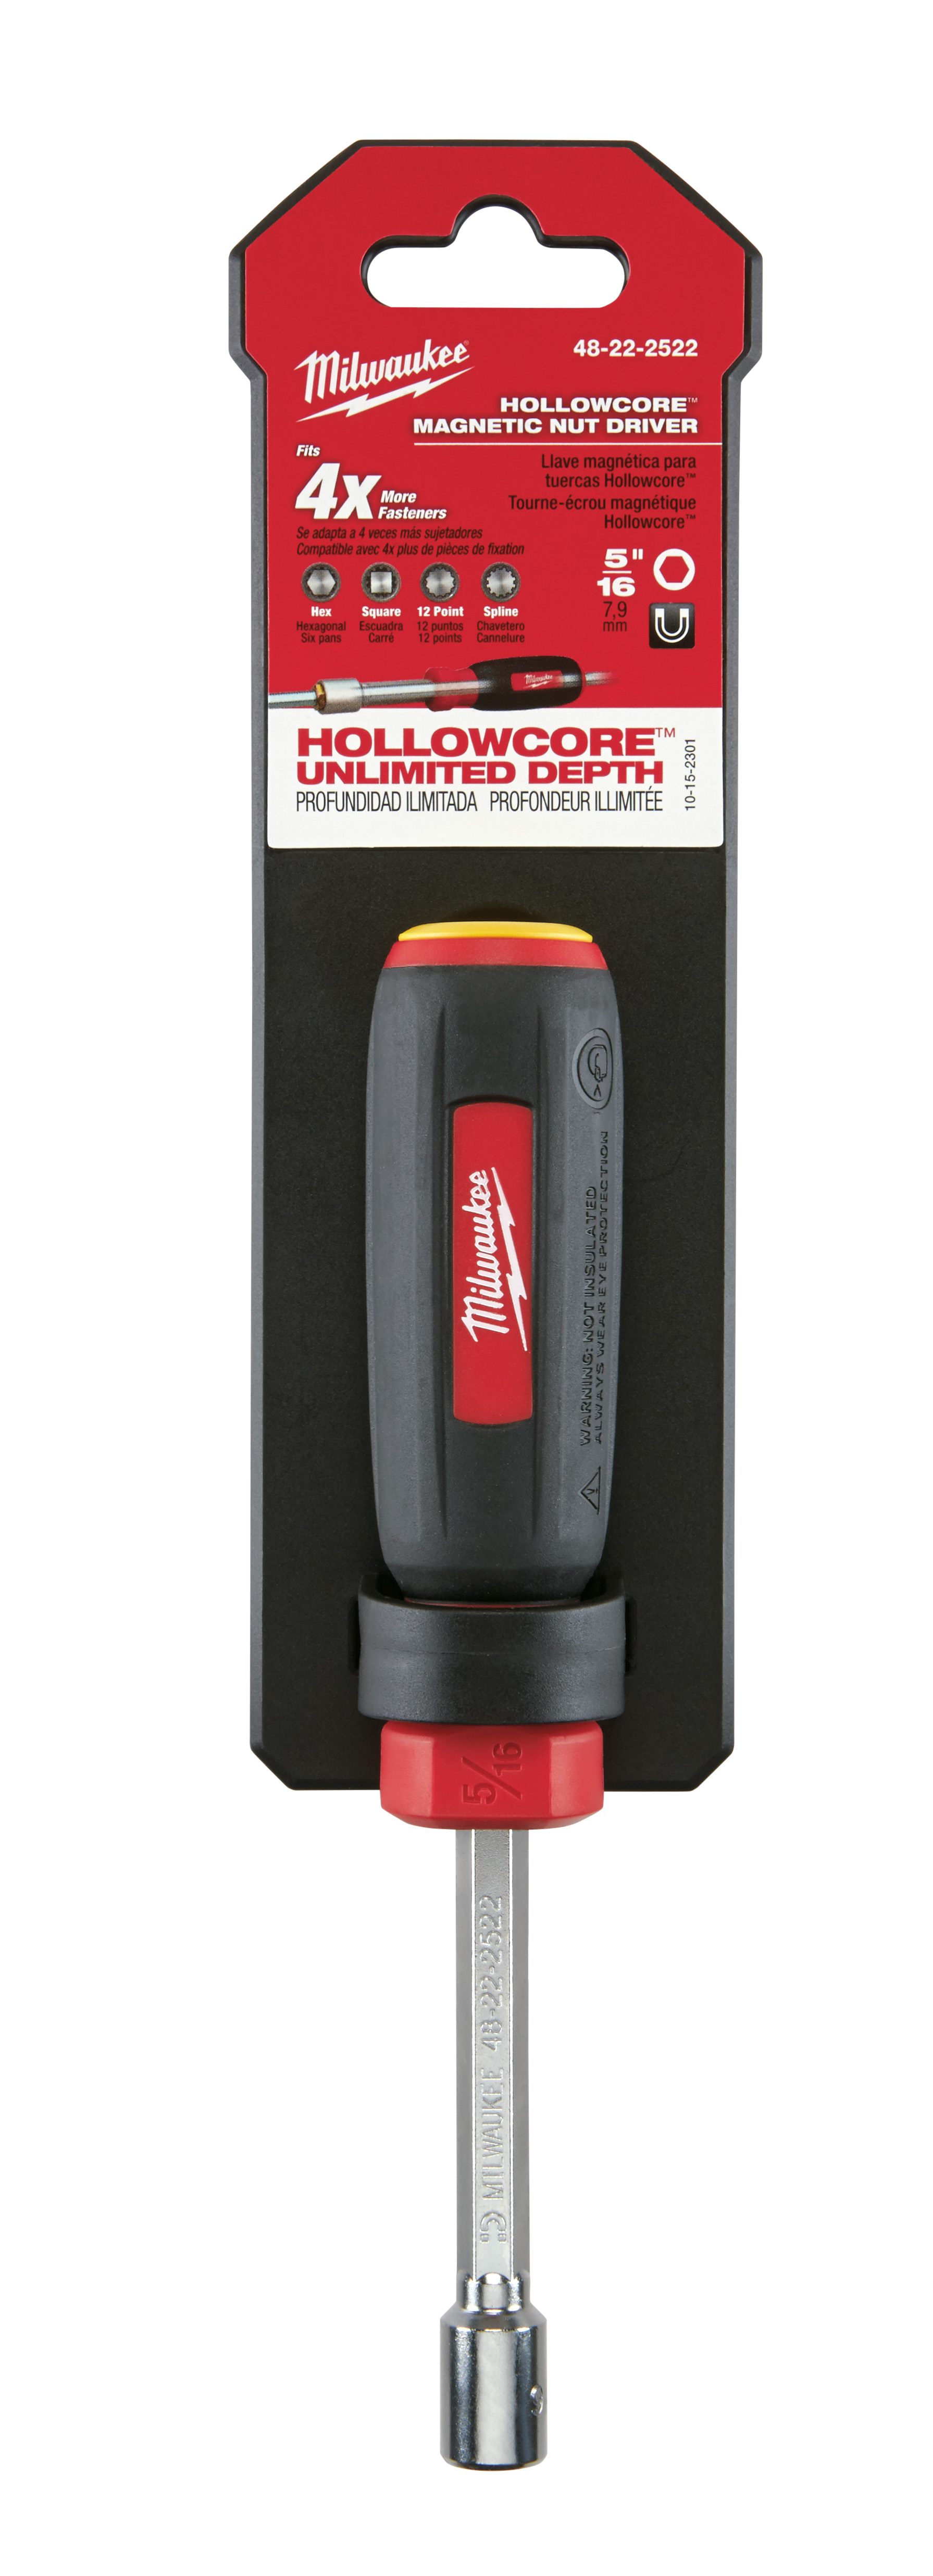 Milwaukee® 48-22-2522 HollowCore™ Magnetic Nut Driver, 5/16 in, Hex Shank, Black/Red Handle, Polished Chrome